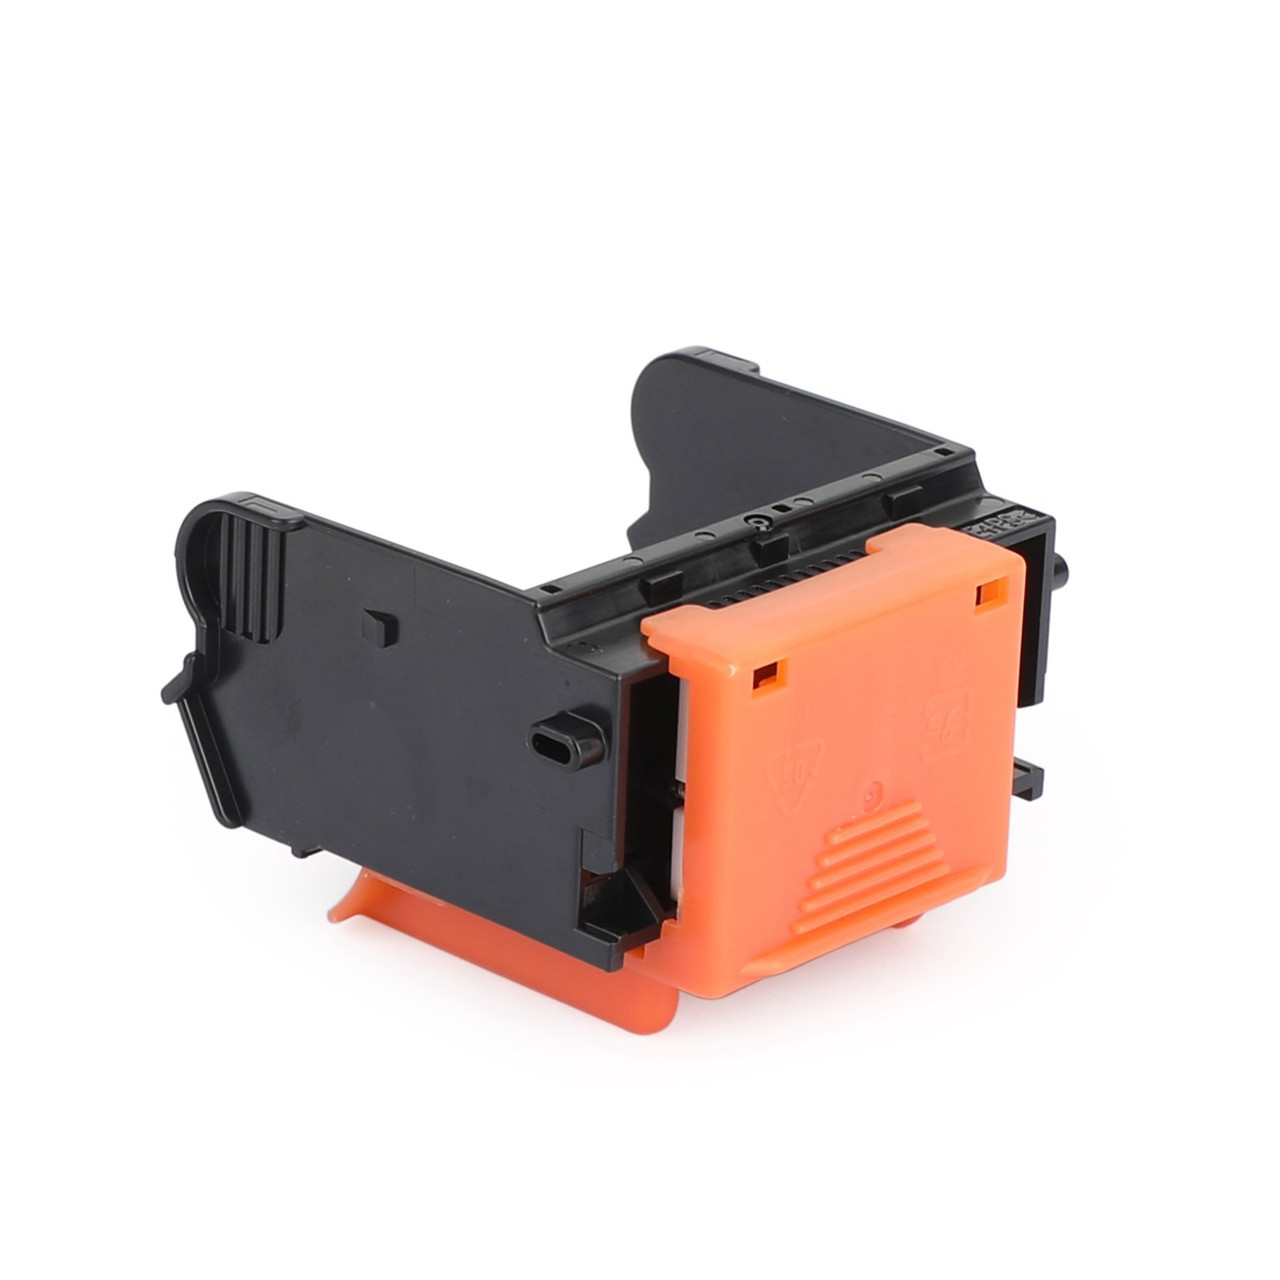 Replacement Printer Print Head QY6-0070 For MP510 MP520 MX700 iP3300 iP3500